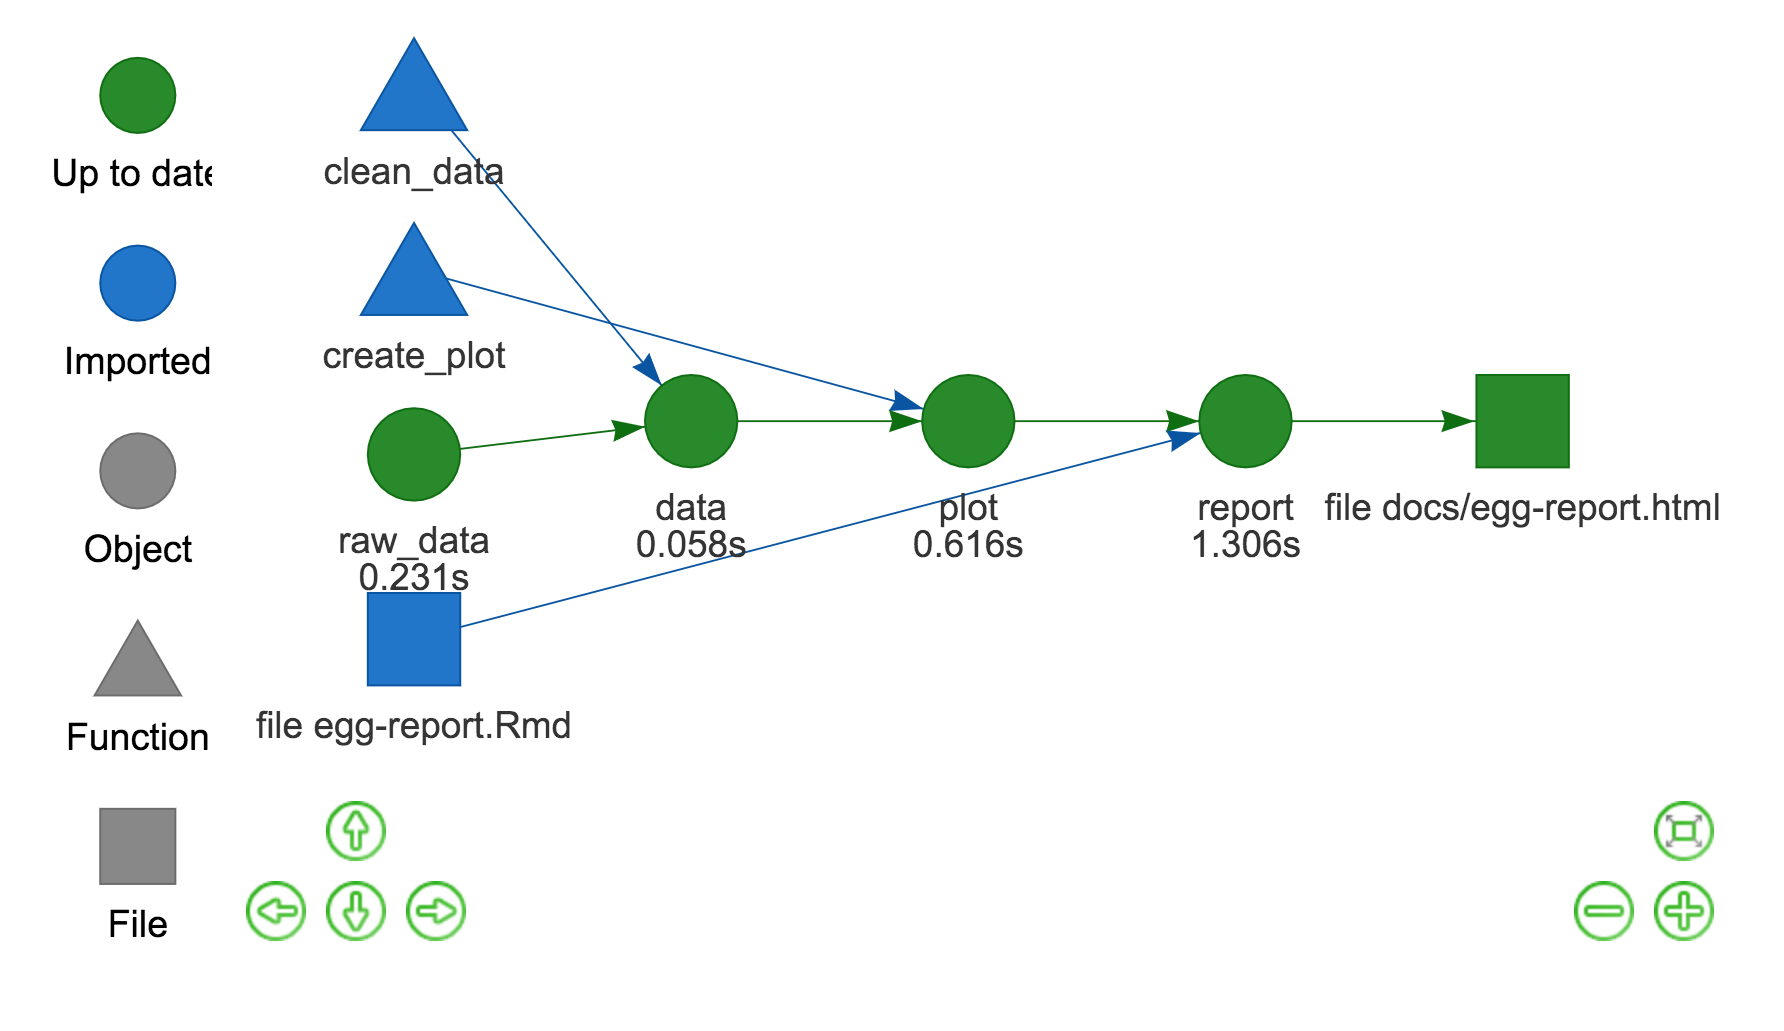 A screenshot of the interactive dependency graph showing the relationship between objects, files and functions in the analysis.